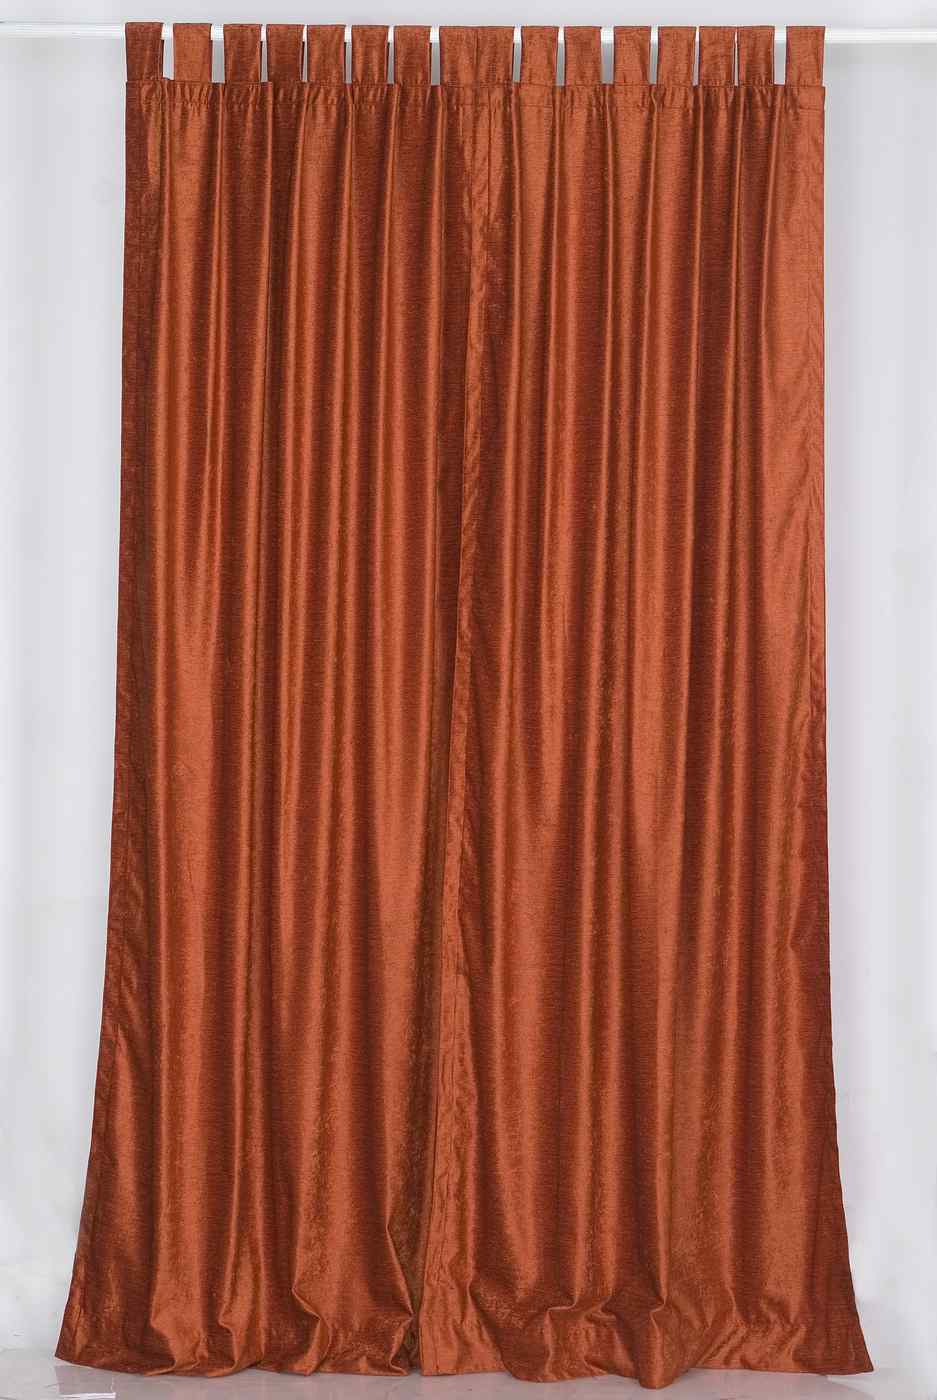 Indian Selections Rust Tab Top  Velvet Curtain / Drape / Panel  - Piece at Sears.com